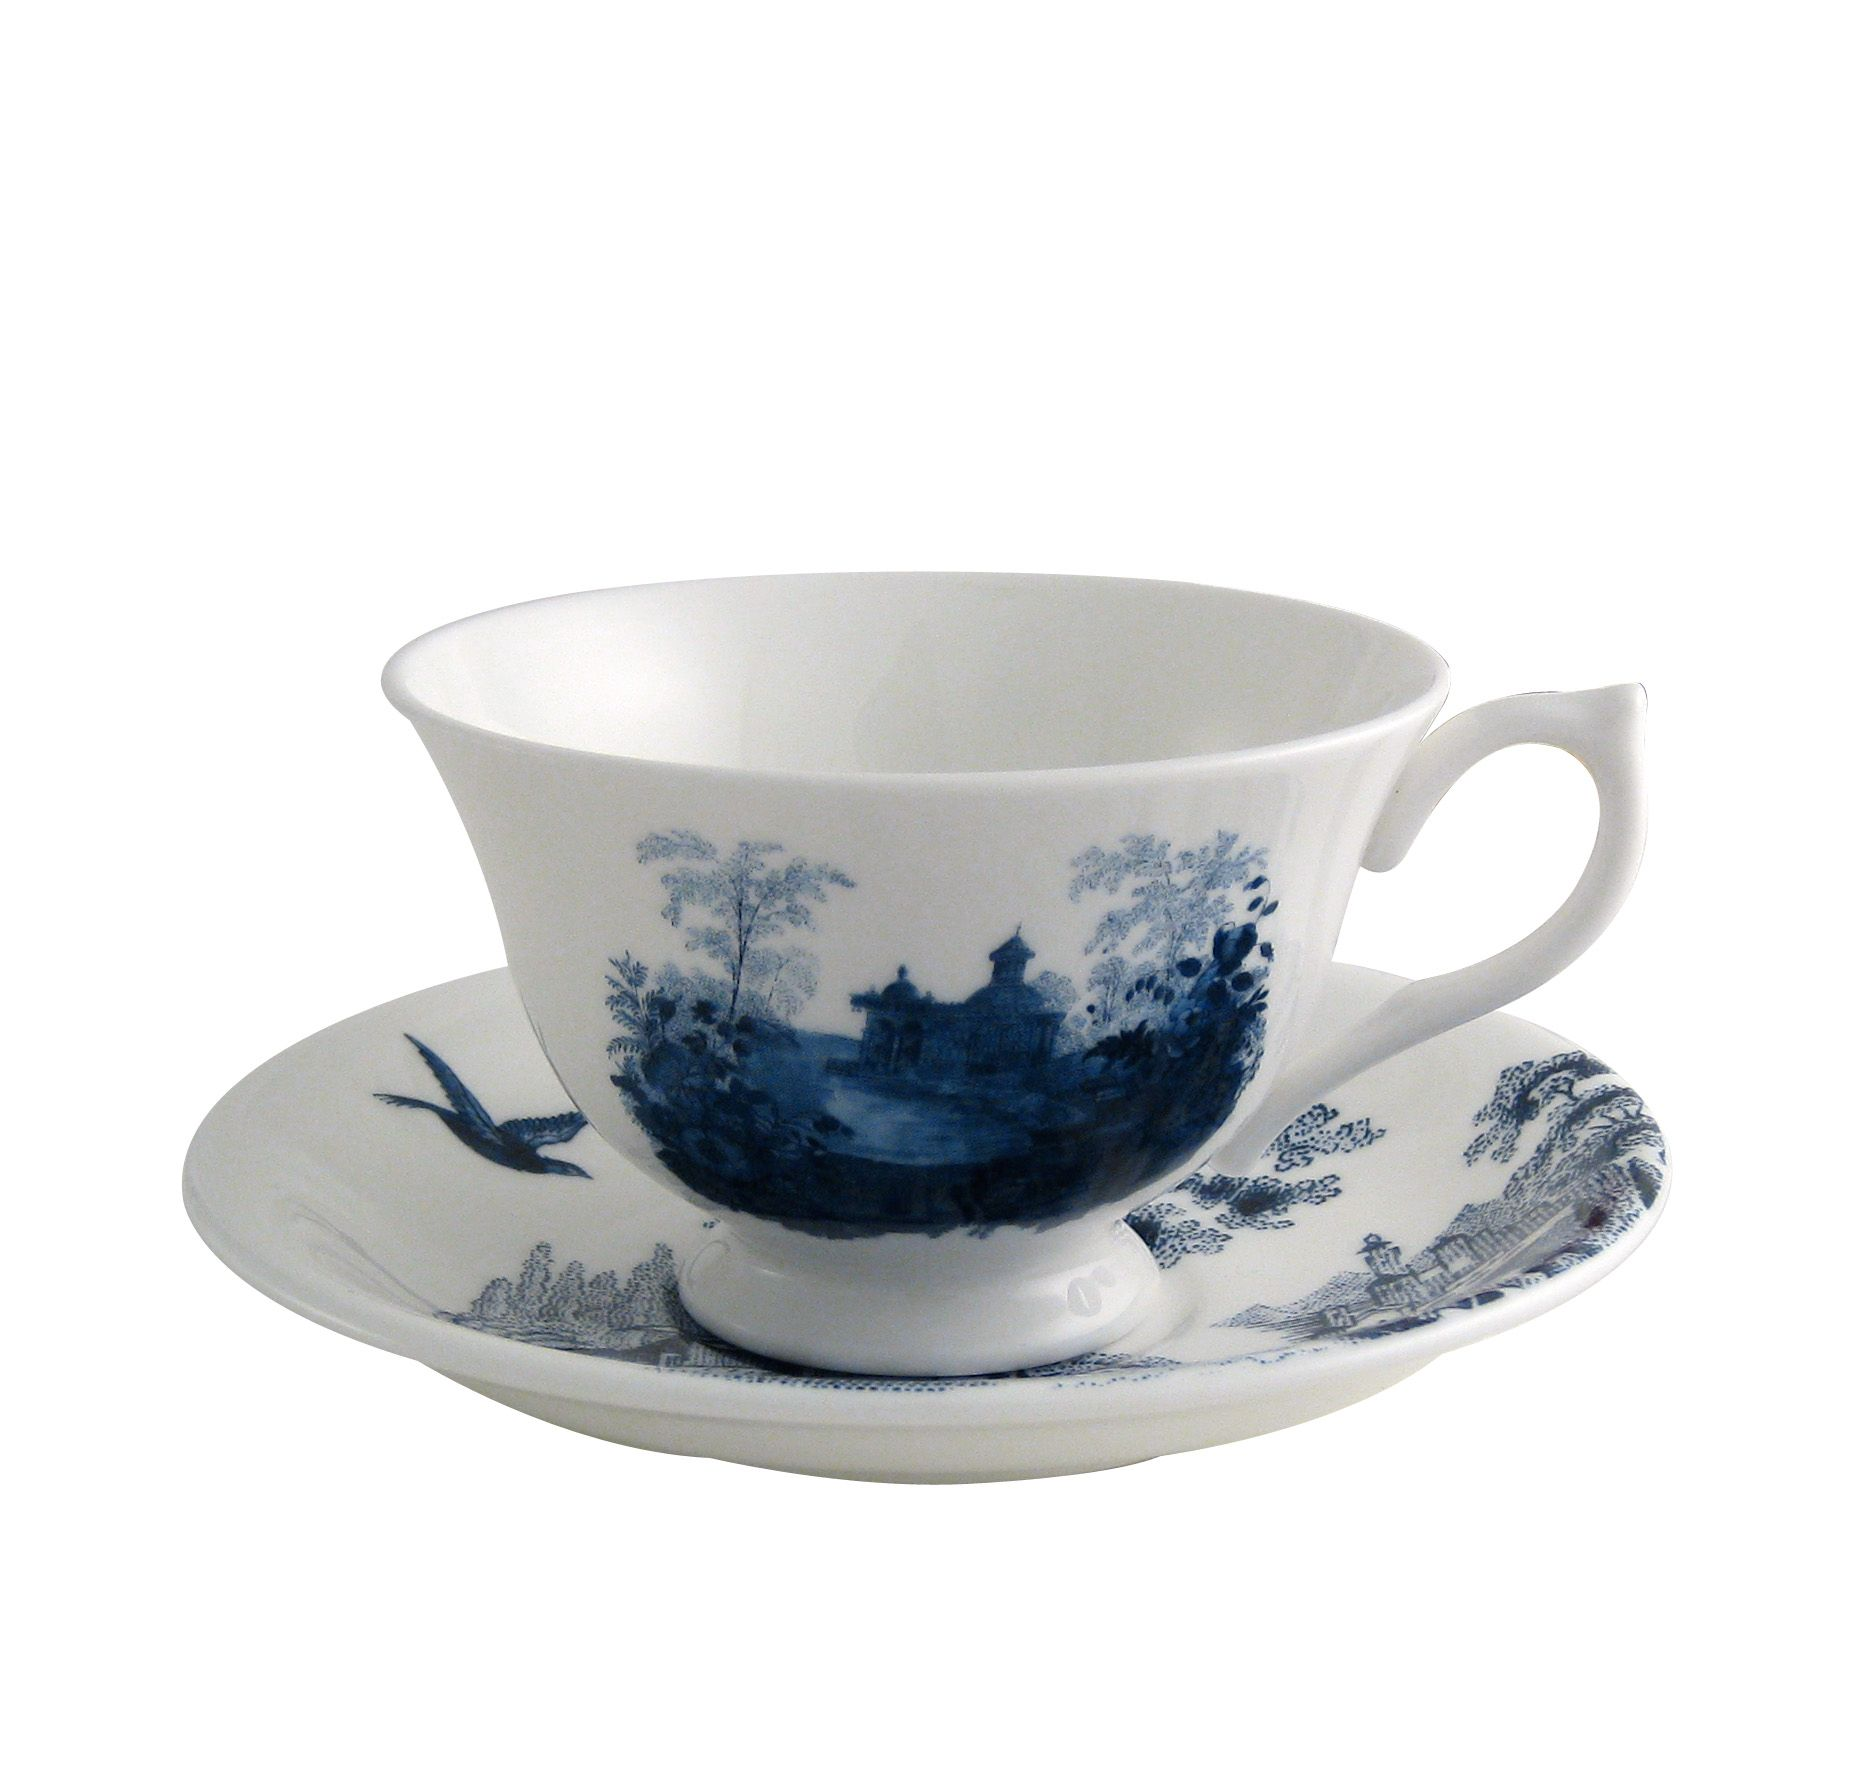 Archive Blue york teacup and saucer